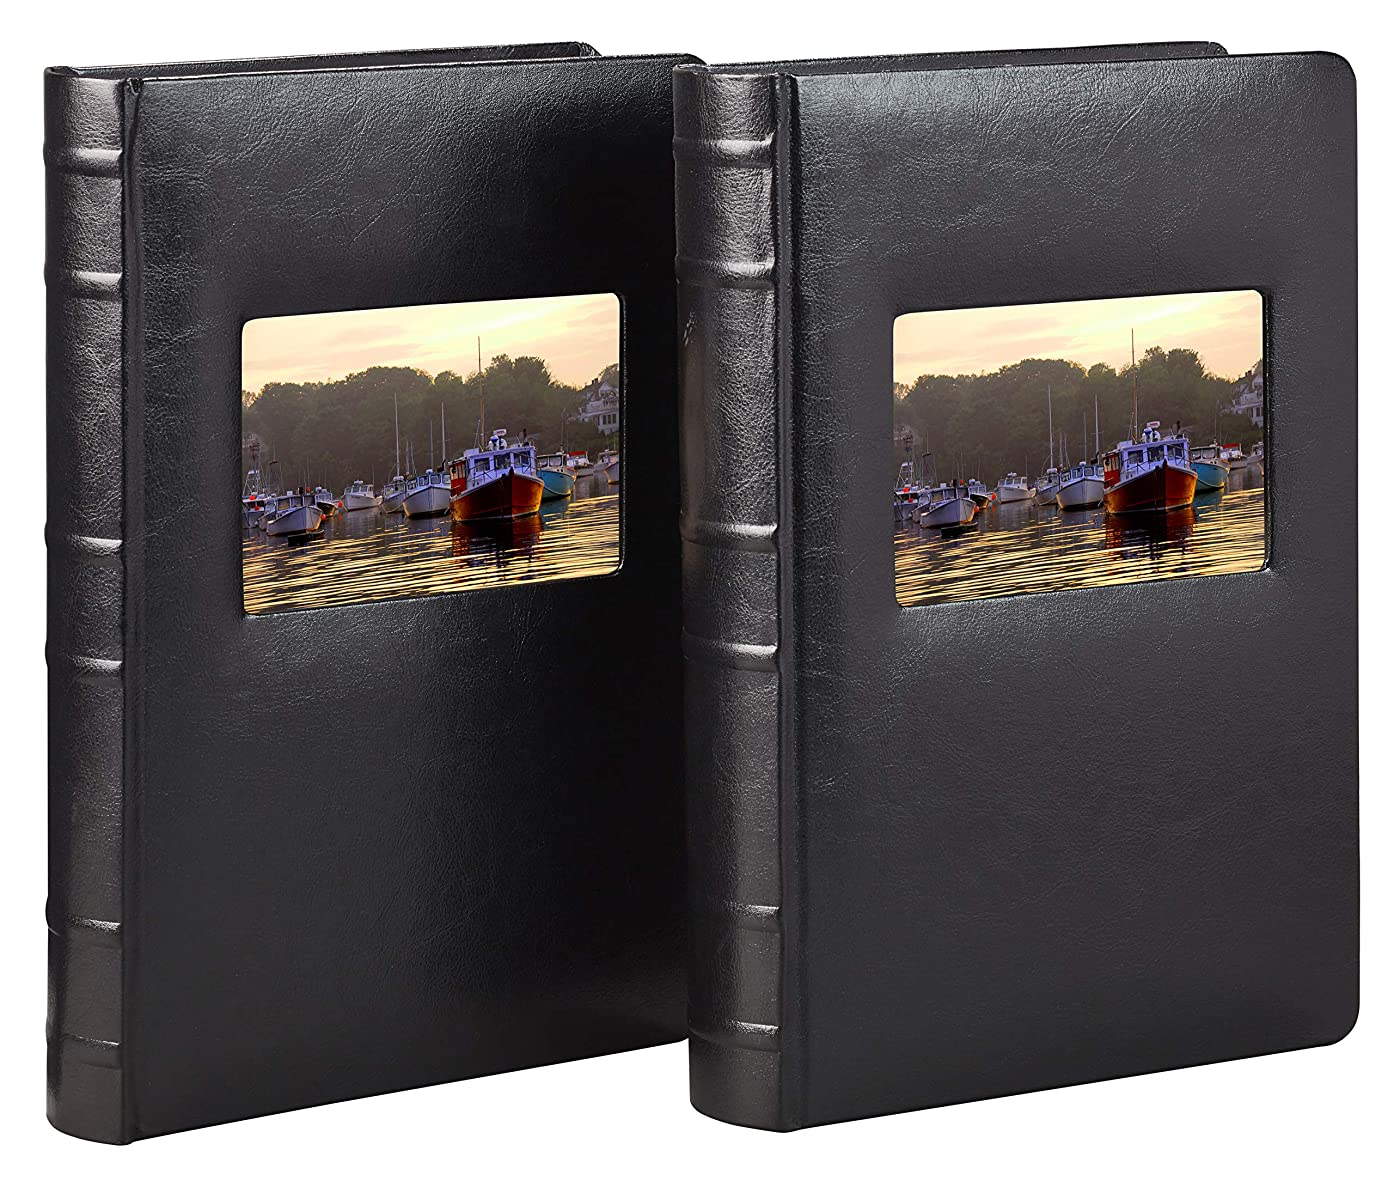 Old Town Bonded Leather Photo Album, 2 Pack (Black)